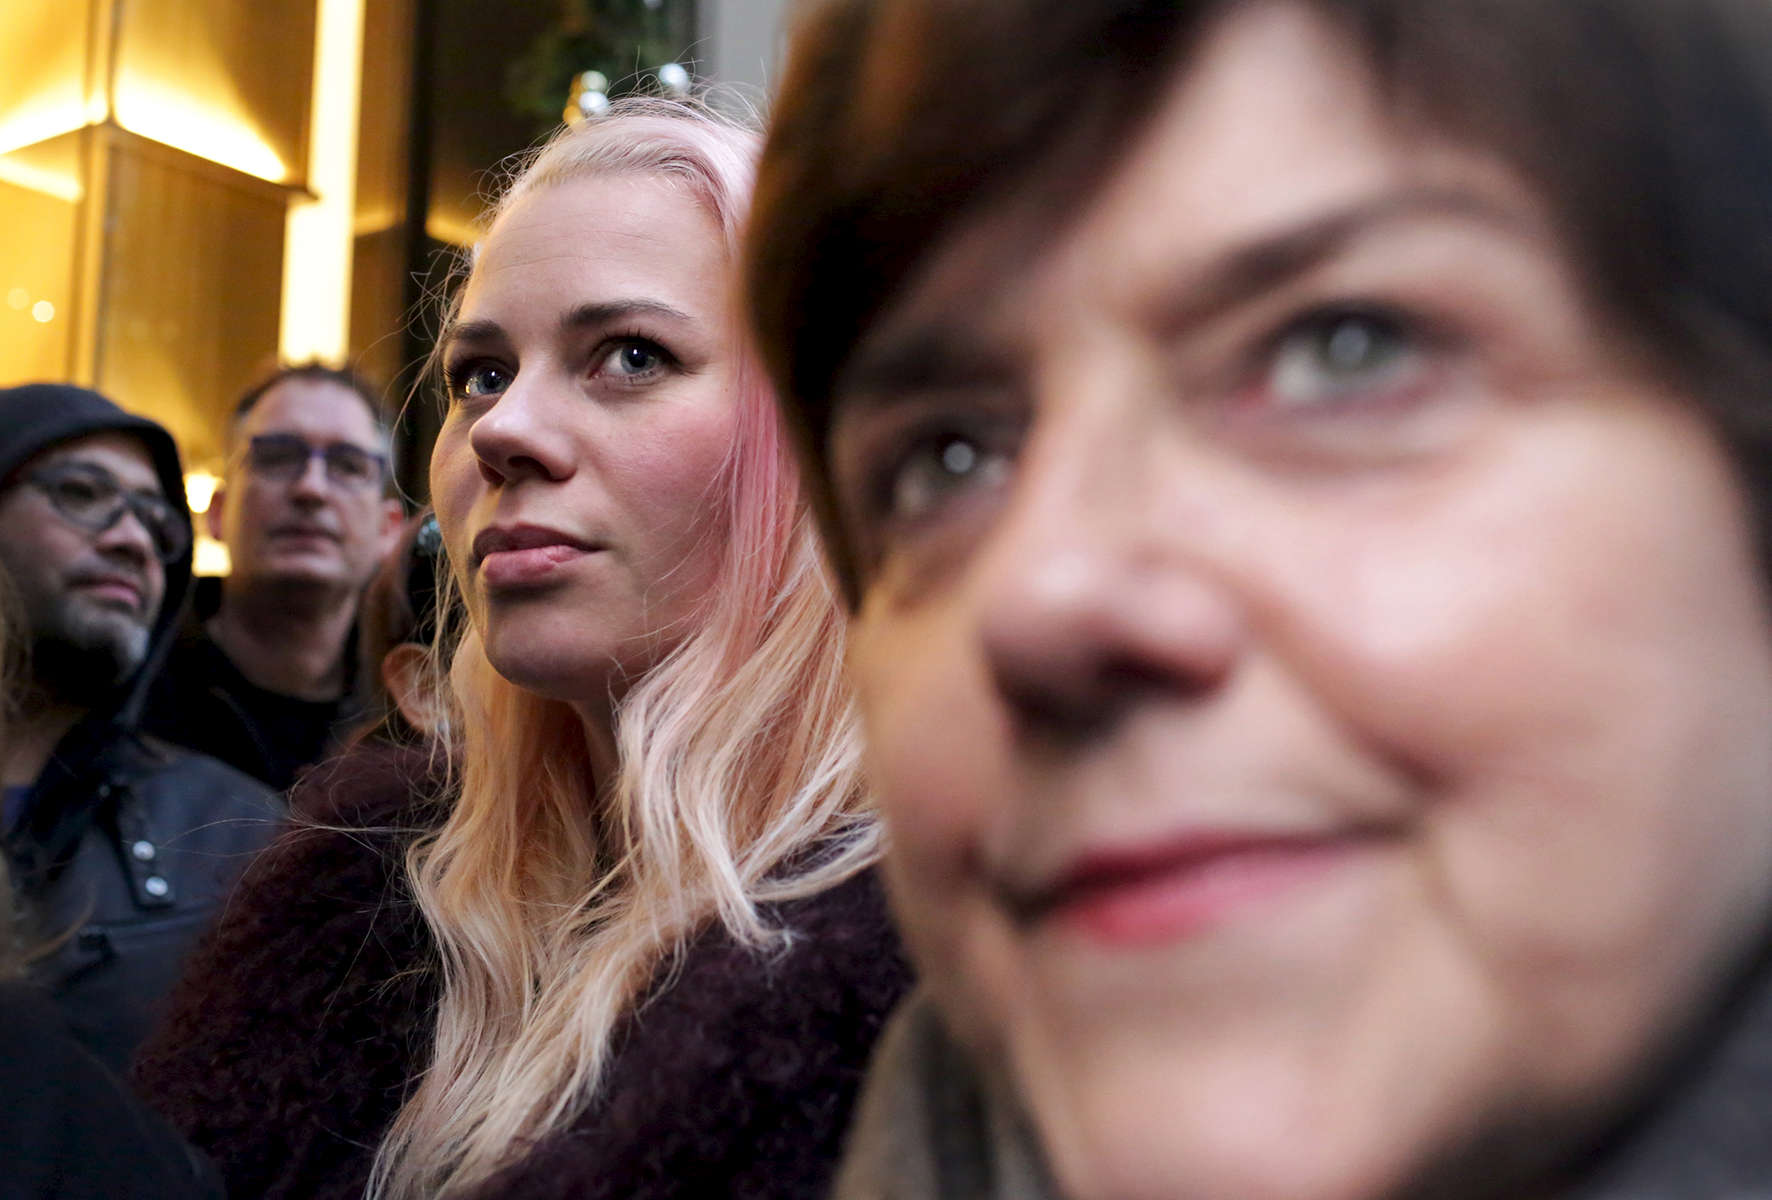 """Passersby walk through a throng of people photographing Trump Tower, the current residence of Republican President elect Donald Trump, in Manhattan, NY on November 22, 2016.-""""Trump Gawkers{quote} is a visceral look at what draws people to Trump Tower, the current residence of U.S. President elect Donald Trump. Hoards of people undertake the trek, bearing security and weather roadblocks, to stare, gawk, absorb, record. The magnetism to the tower (and by extension, to the man inside it,) manifests in the sheer numbers of daily visitors, as well as in the fascination etched across their faces. Upon first look, the time so many spend there seems like sport and amusement, but underneath upturned eyes and selfie smiles prevails an undercurrent of anxiety - and not just for those who didn't want Trump in the Oval Office. Some of the electorate that voted against Hillary is now unsure for which version of Trump they voted. People's upward gazes, no matter their political views, seek answers: How could this happen? Or now that it has, what will it mean?"""